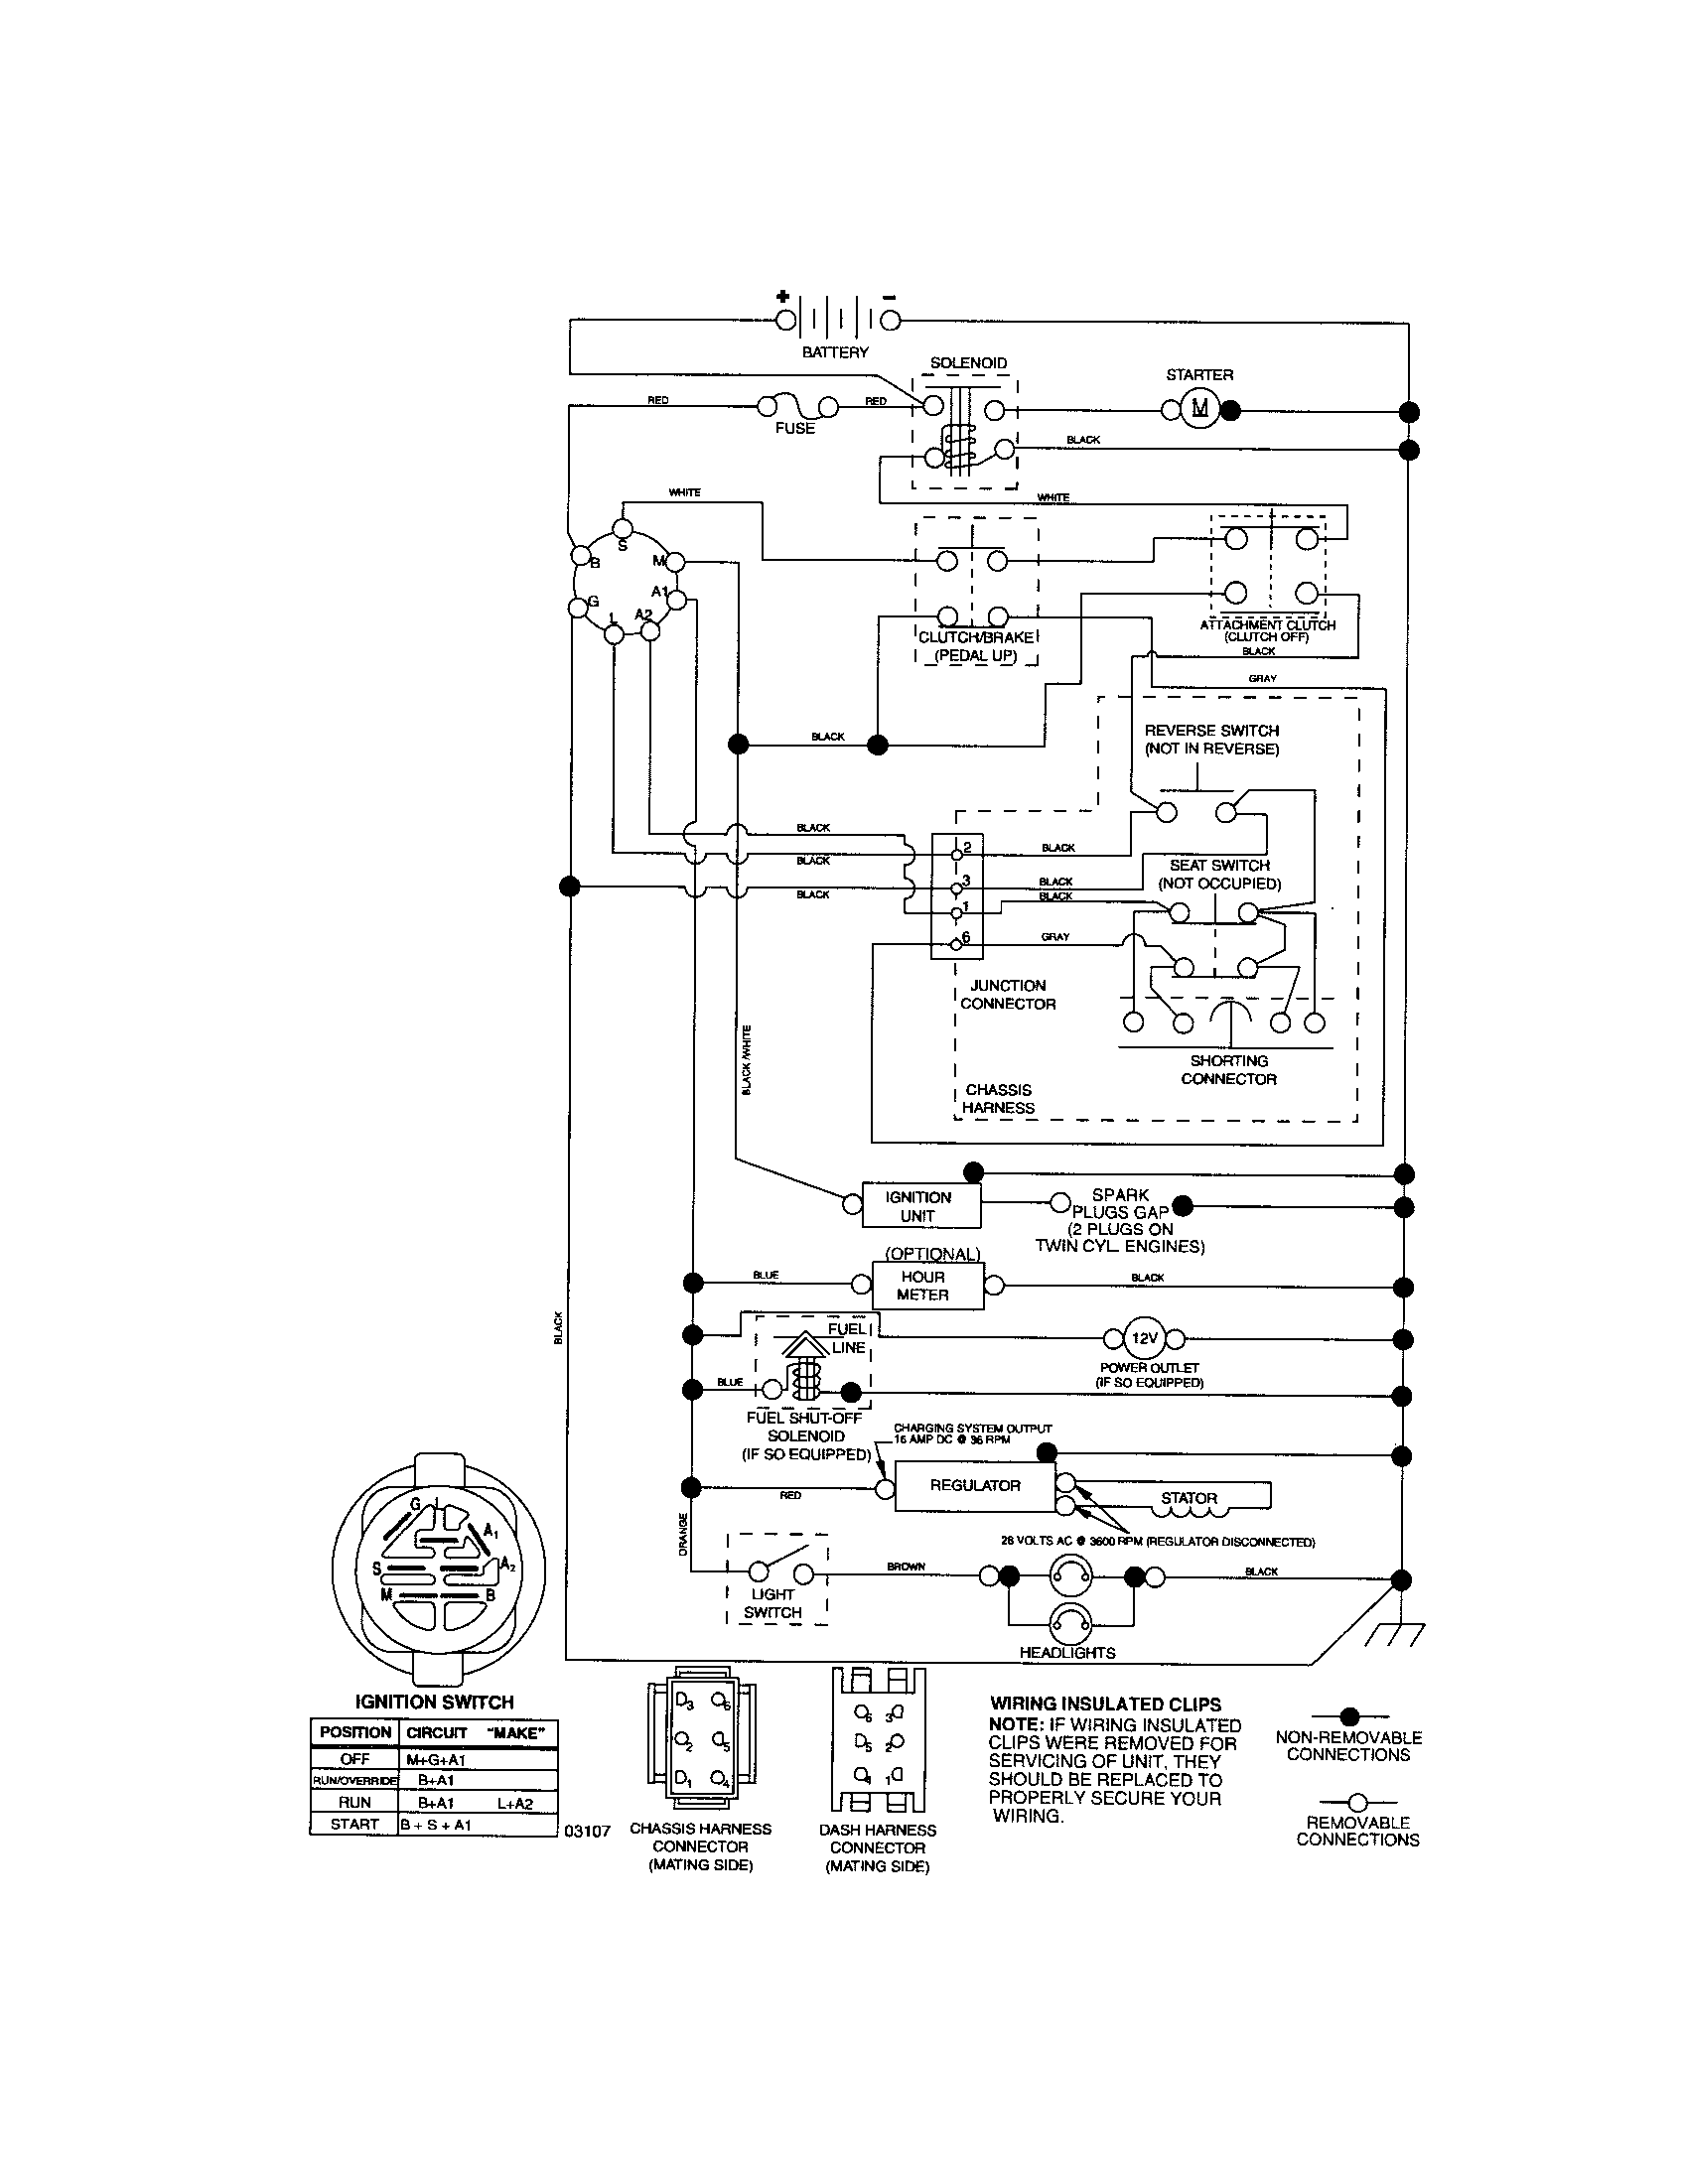 6af5f1447fd13c8443376822ddc1e105 craftsman riding mower electrical diagram wiring diagram briggs and stratton solenoid wiring at crackthecode.co